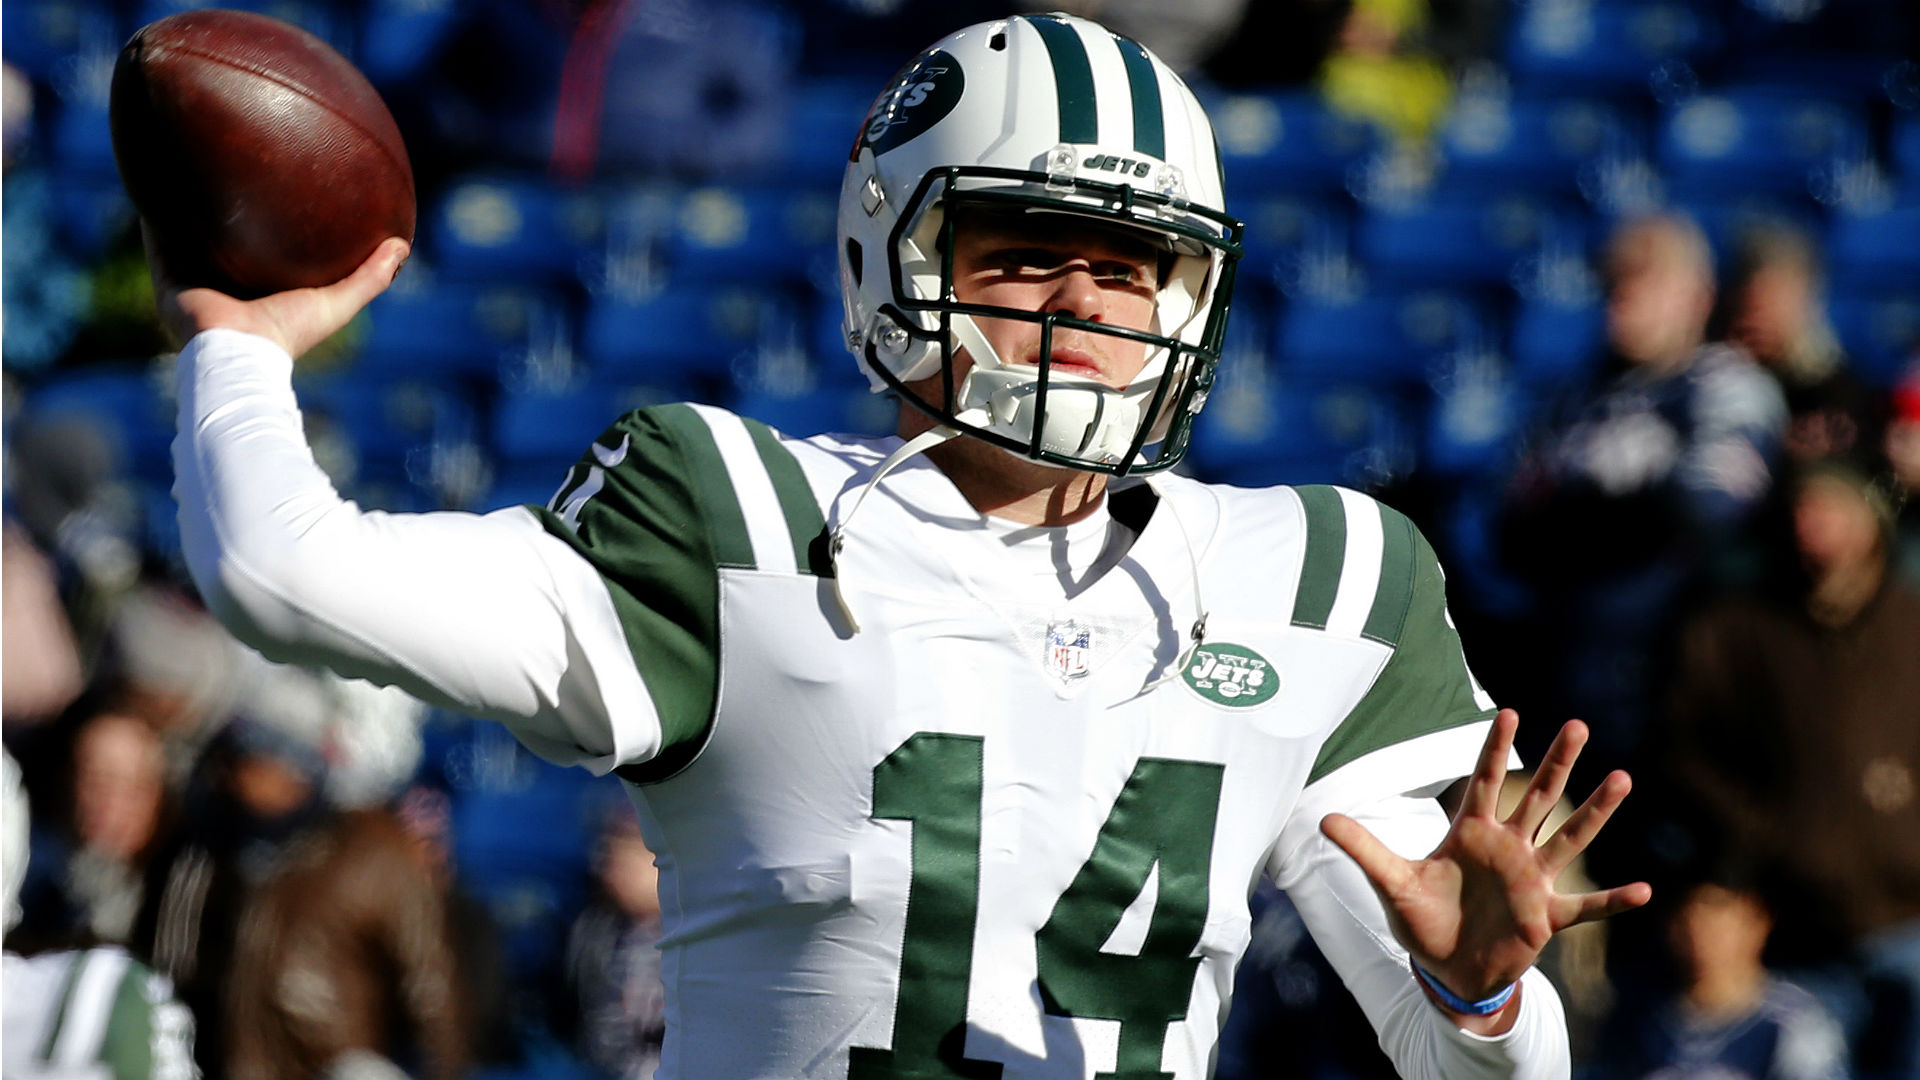 The New York Jets' signing of Le'Veon Bell pleased quarterback Sam Darnold.